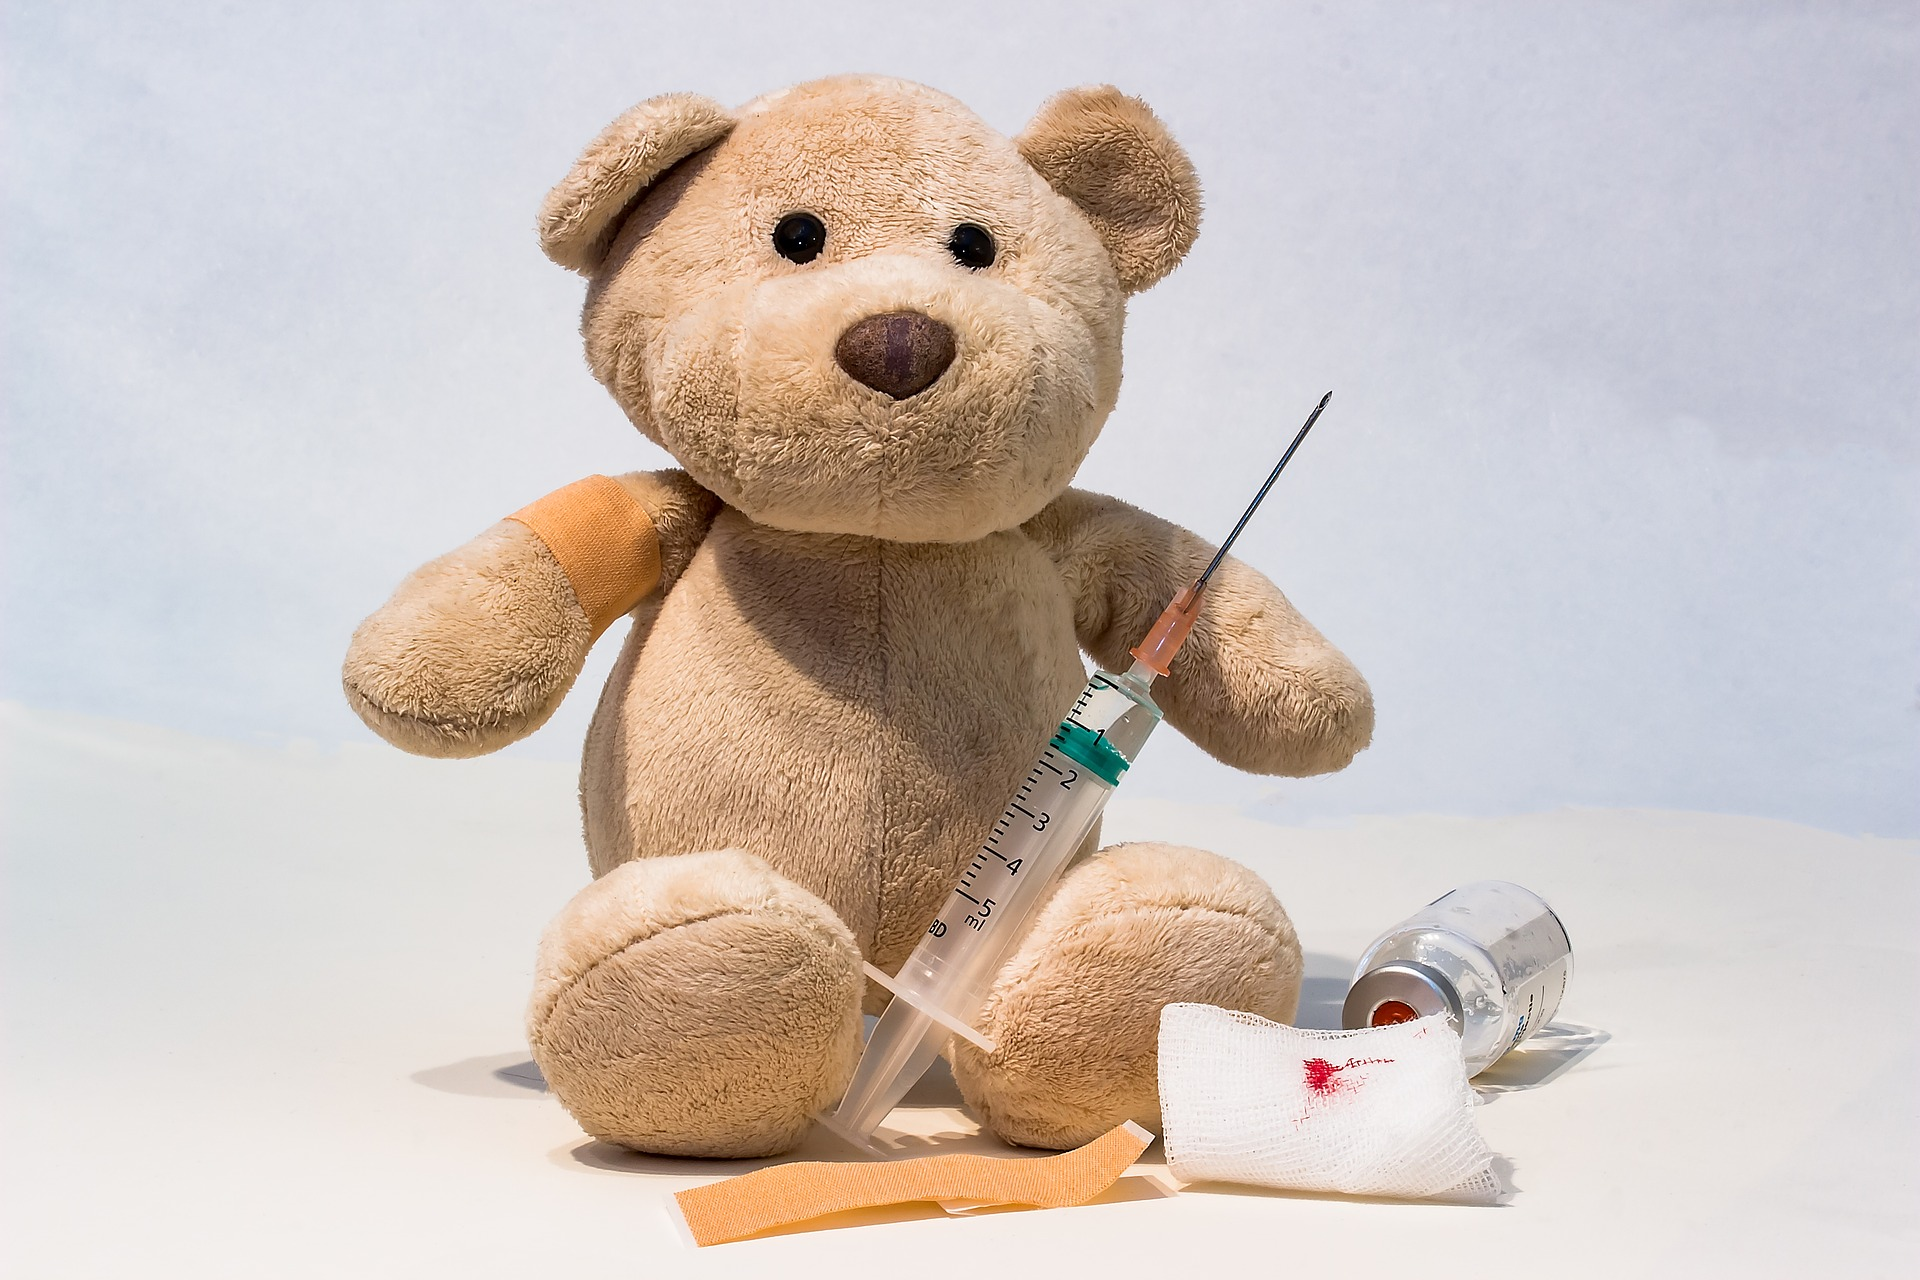 A stuffed bear with a syringe leaning against its left arm, a bandage on its right arm, a bandage in front of the bear, along with a vial and a piece of gauze with blood on it